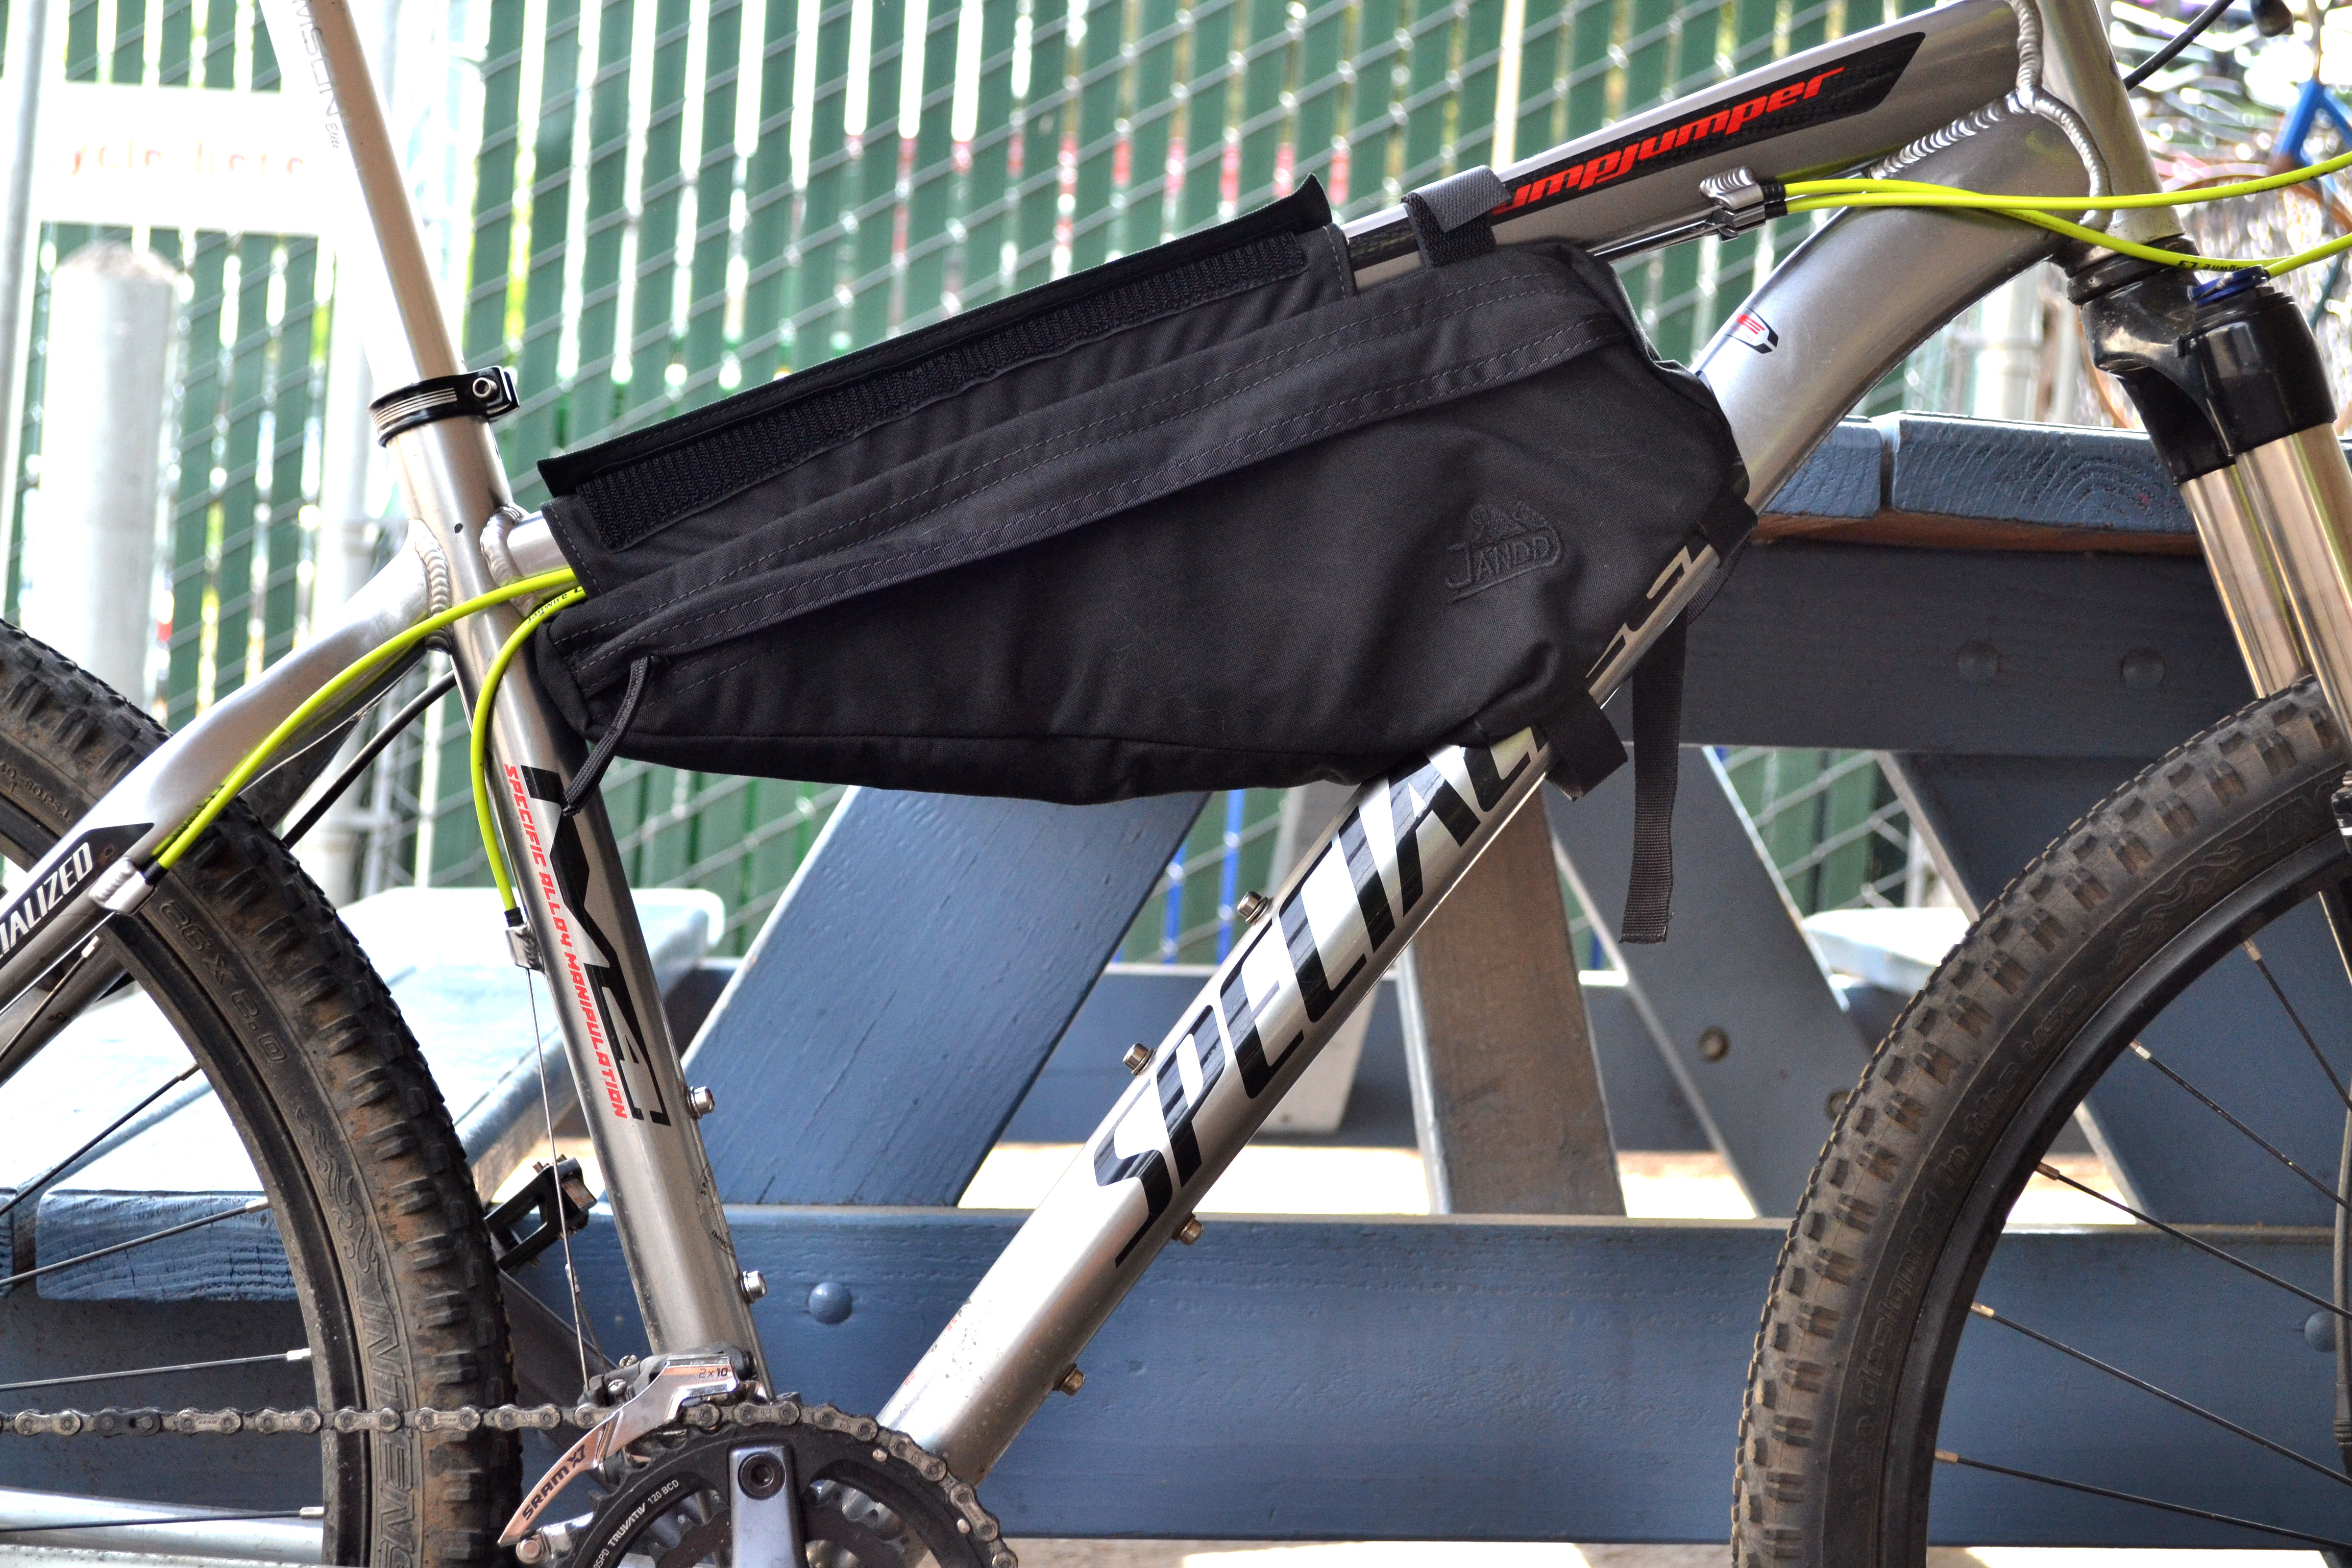 Shop tip: carrying stuff on your bike - Community Cycling Center